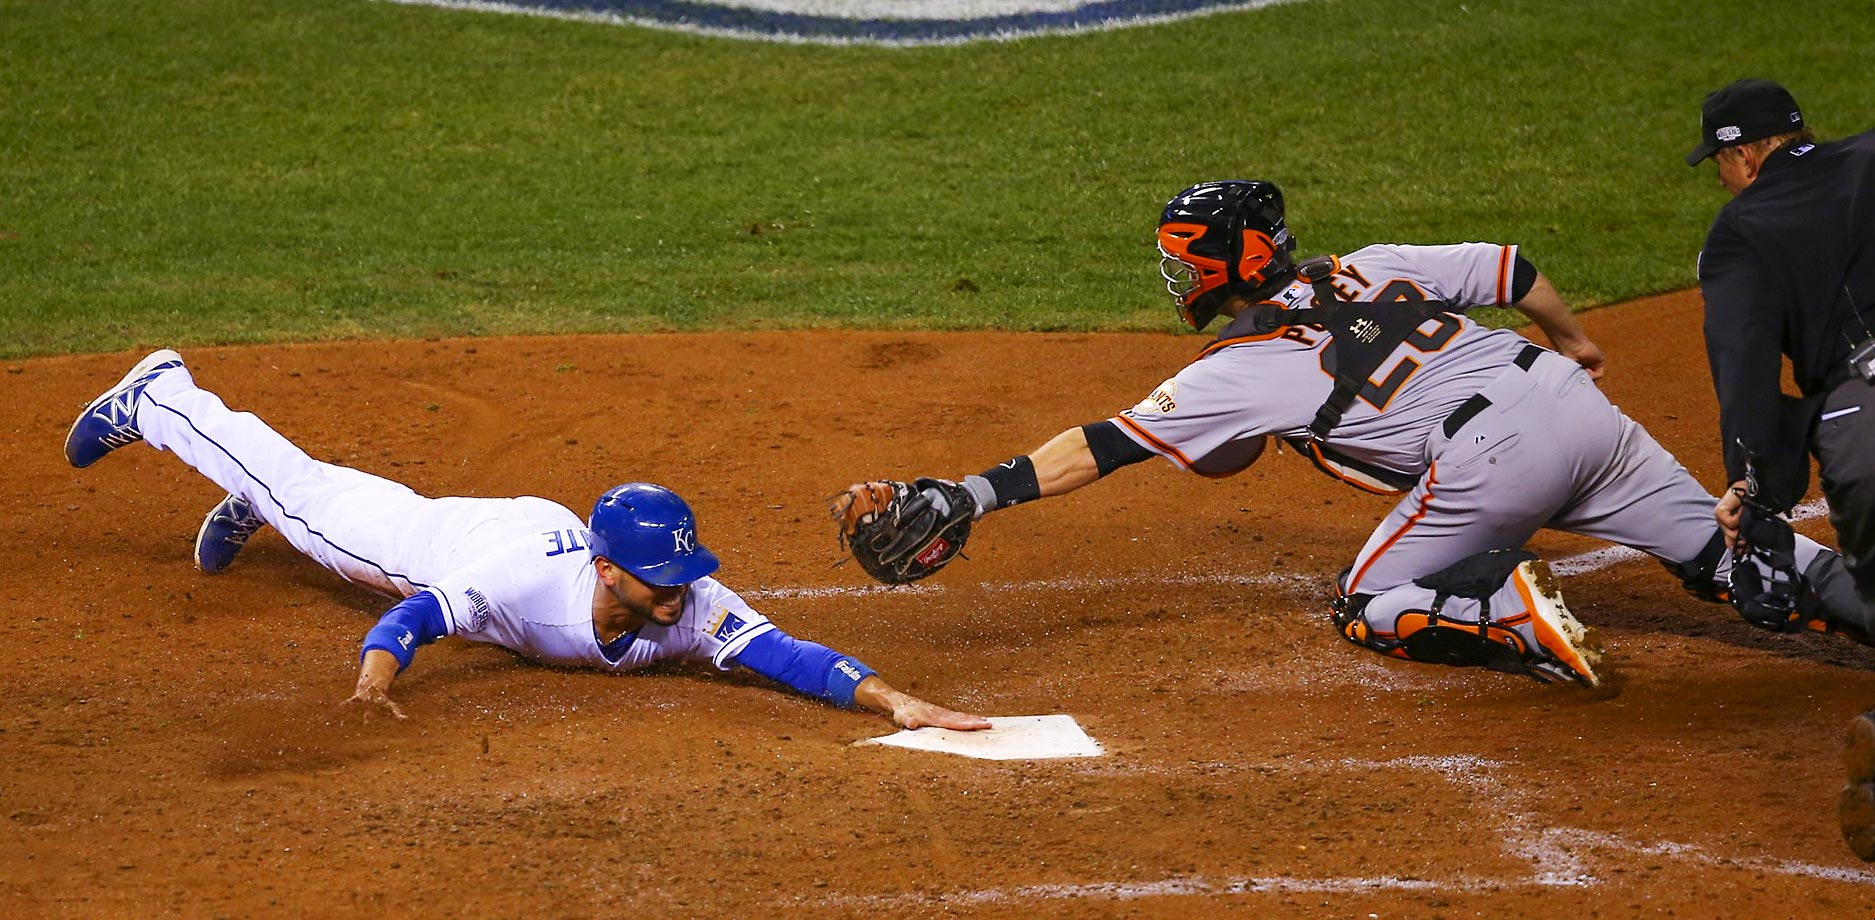 Royals second baseman Omar Infante scores in the fifth inning.